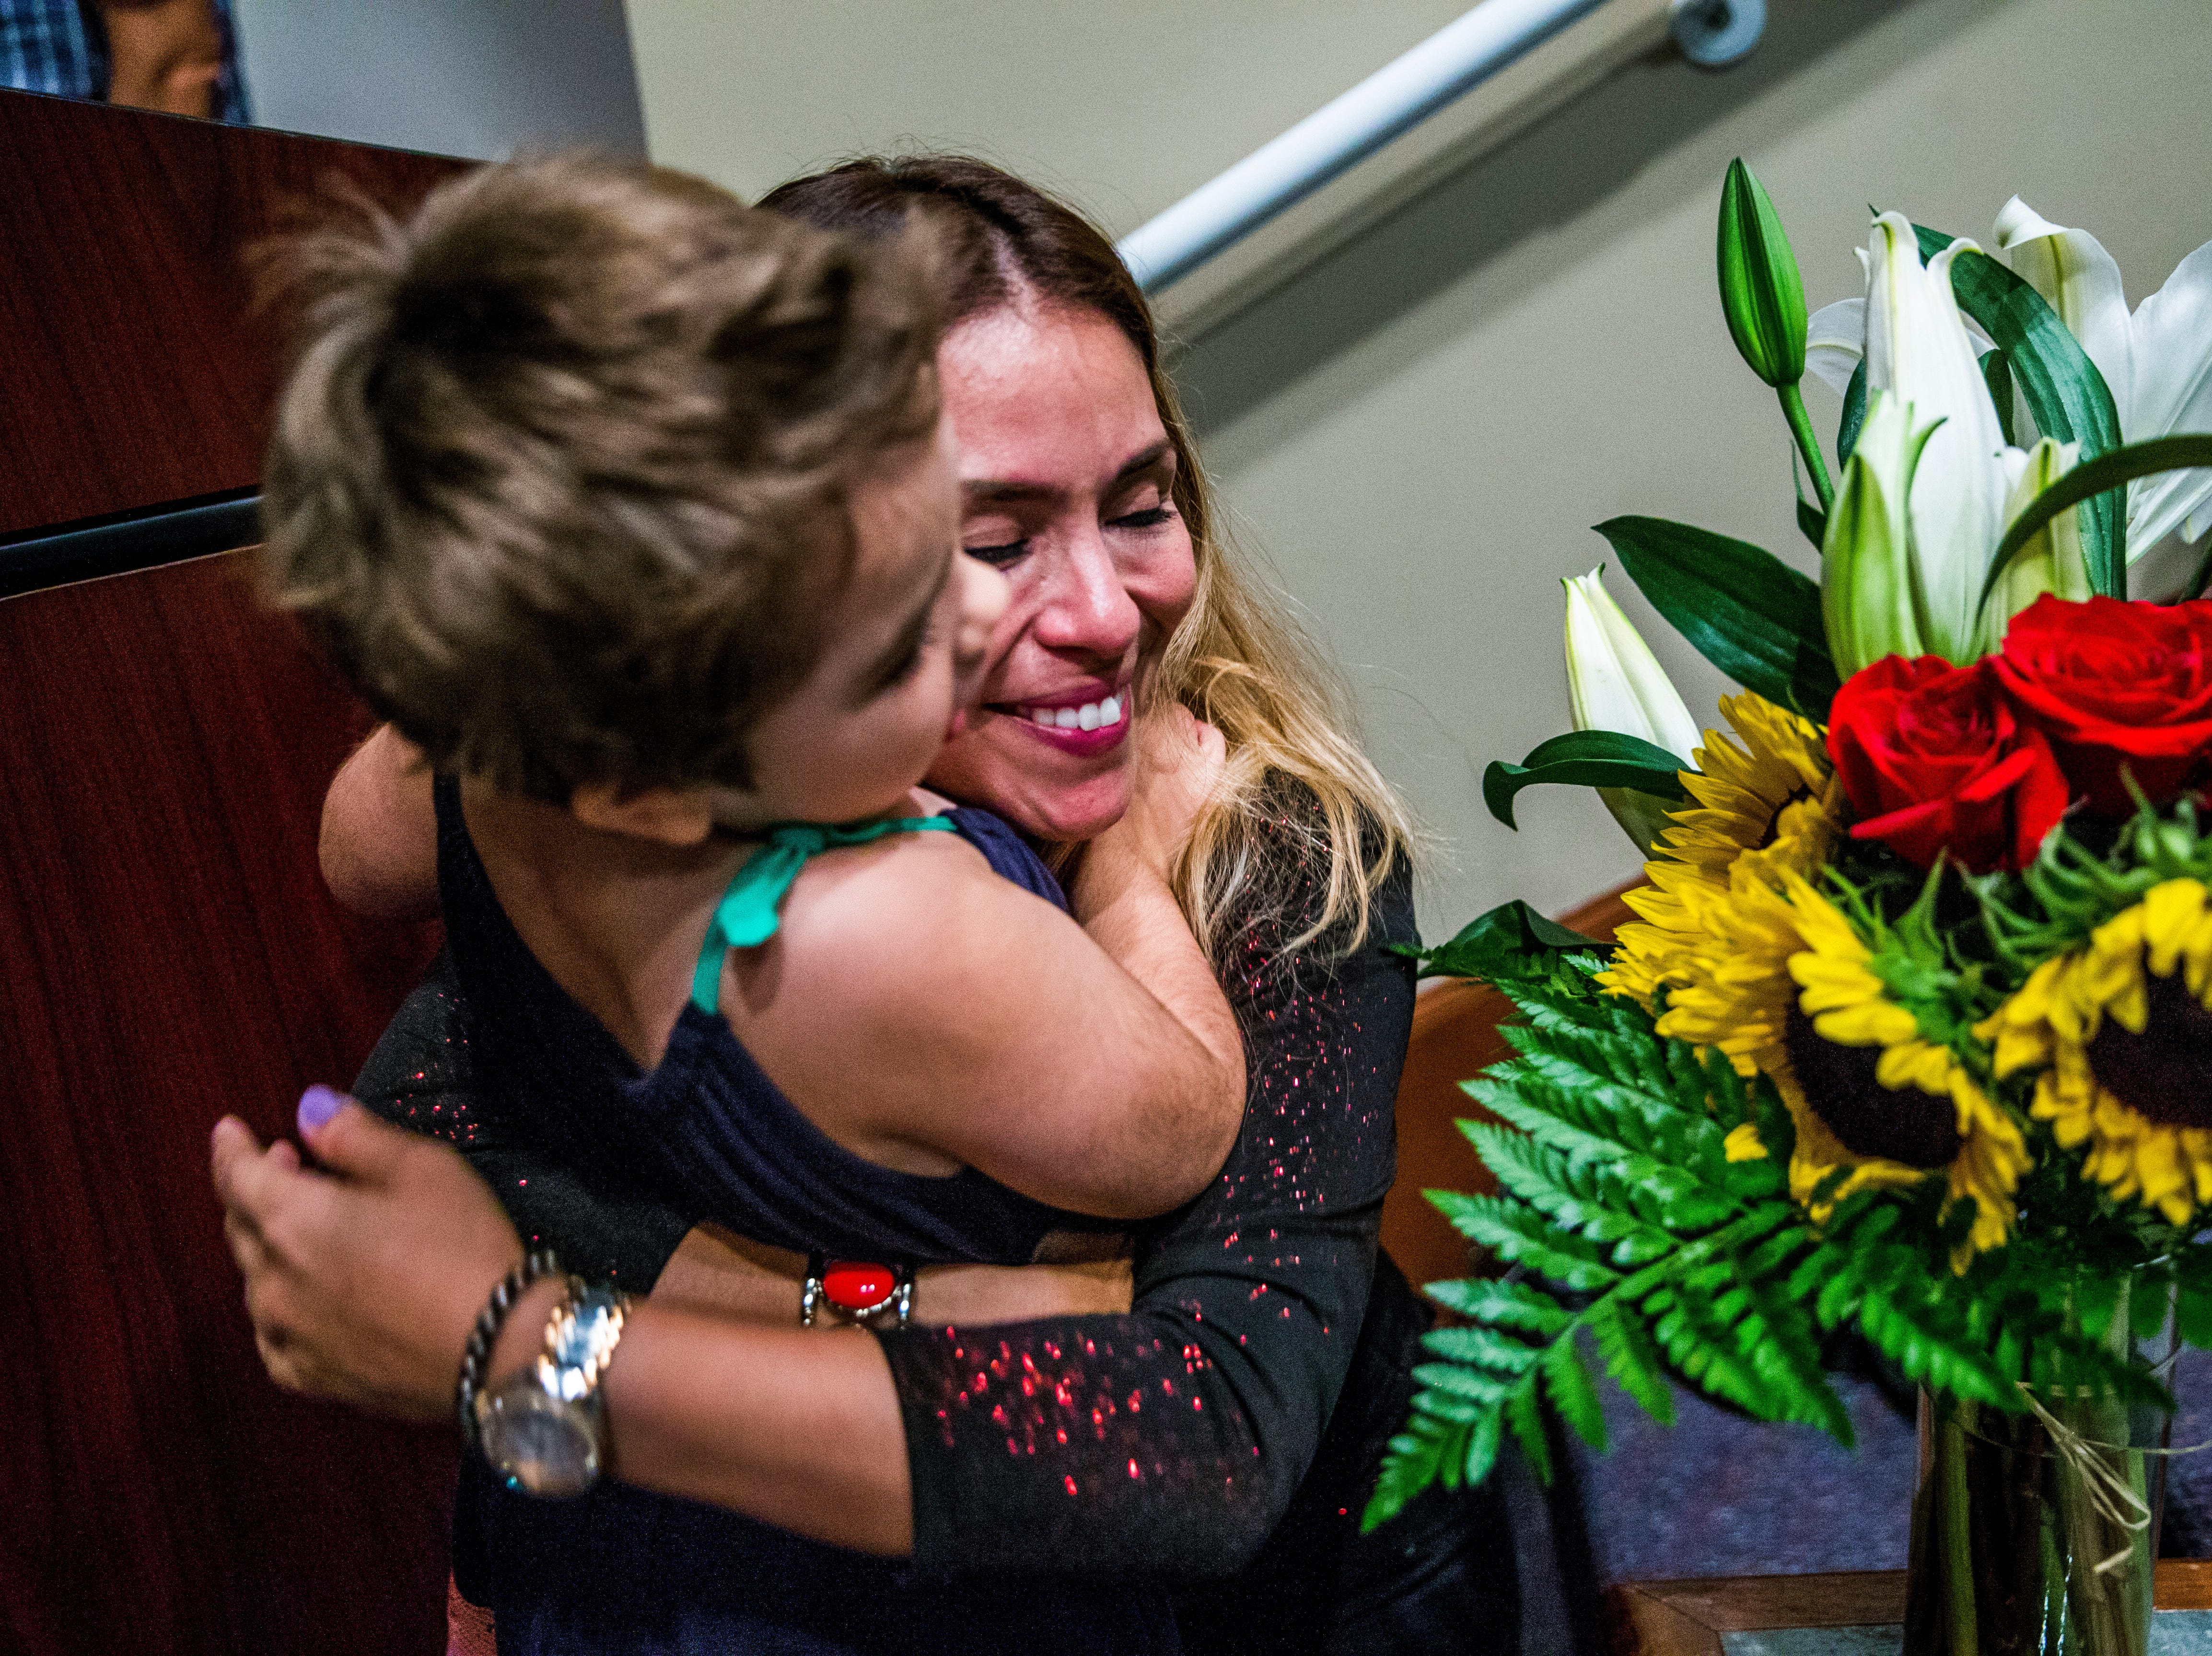 Marcela Guimoye hugs Talley Louise Wilson, 7, after a recital to conclude the EndlessBrain summer camp at the Collier County Library in Naples on Saturday, Aug. 11, 2018. To conclude the camp, Marcela Guimoye put on a recital for the campers to be able to perform the songs they learned during their time with EndlessBrain.